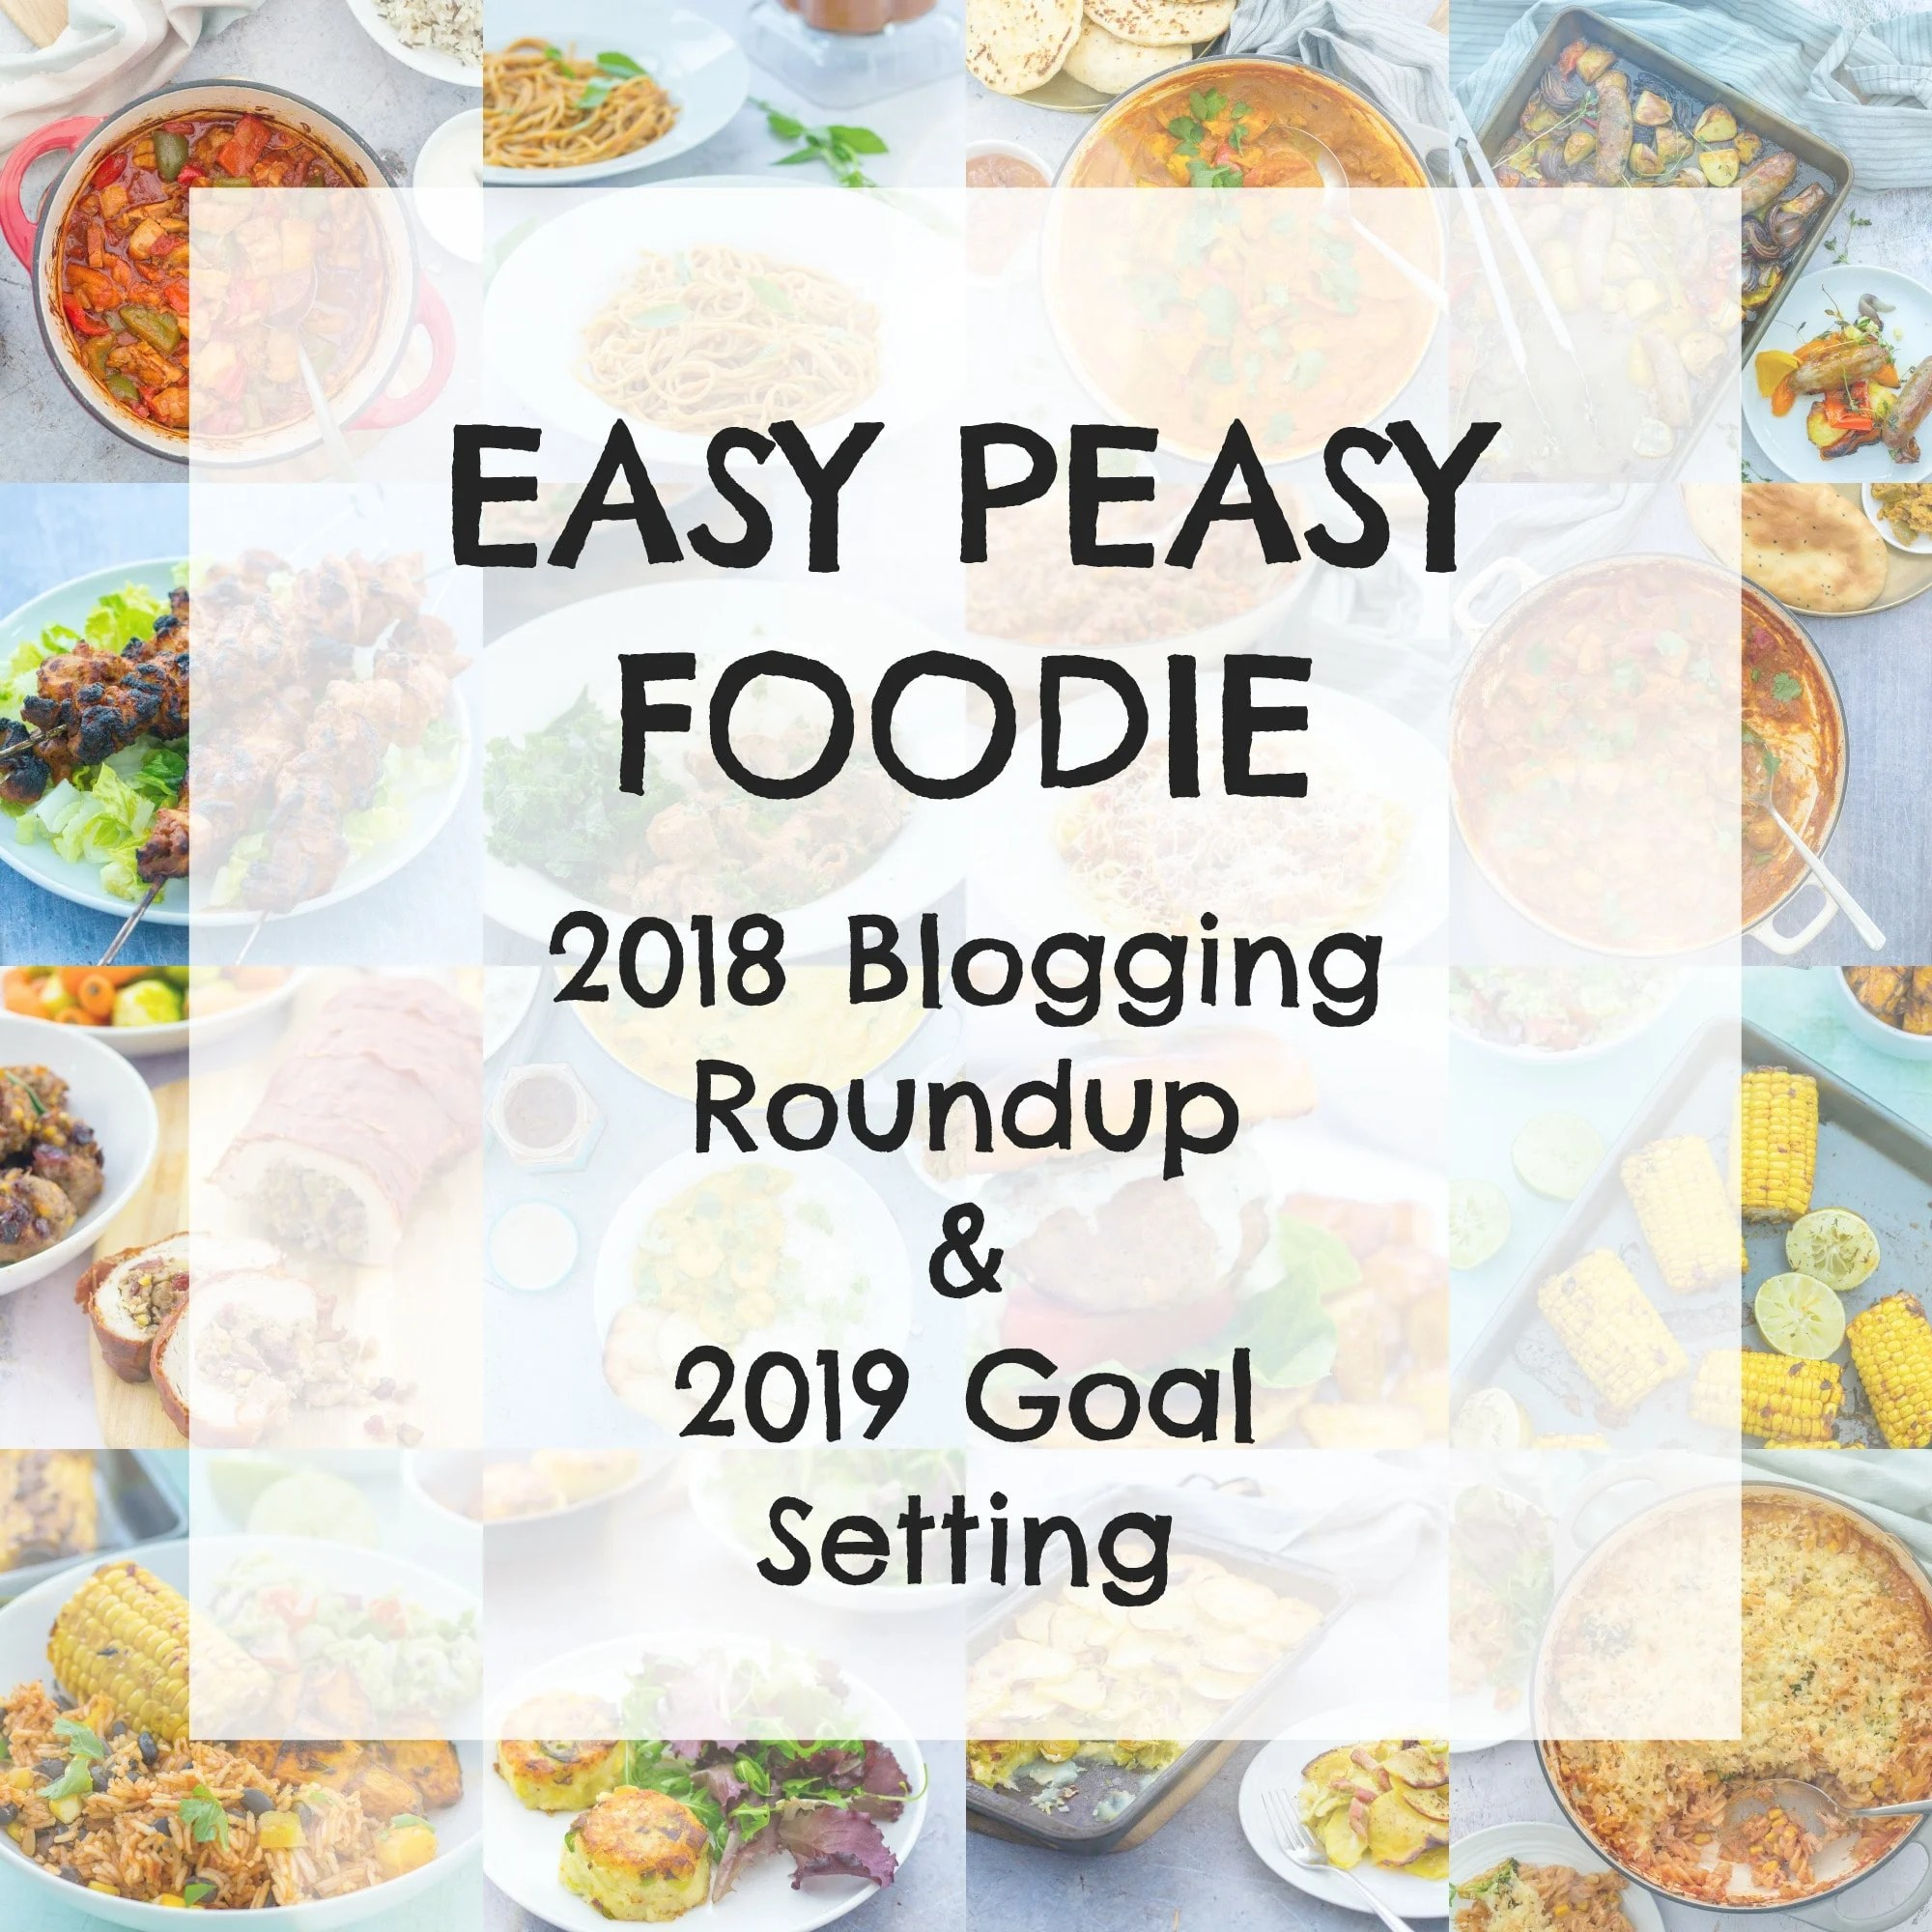 Easy Peasy Foodie 2018 Blogging Roundup and 2019 Goal Setting